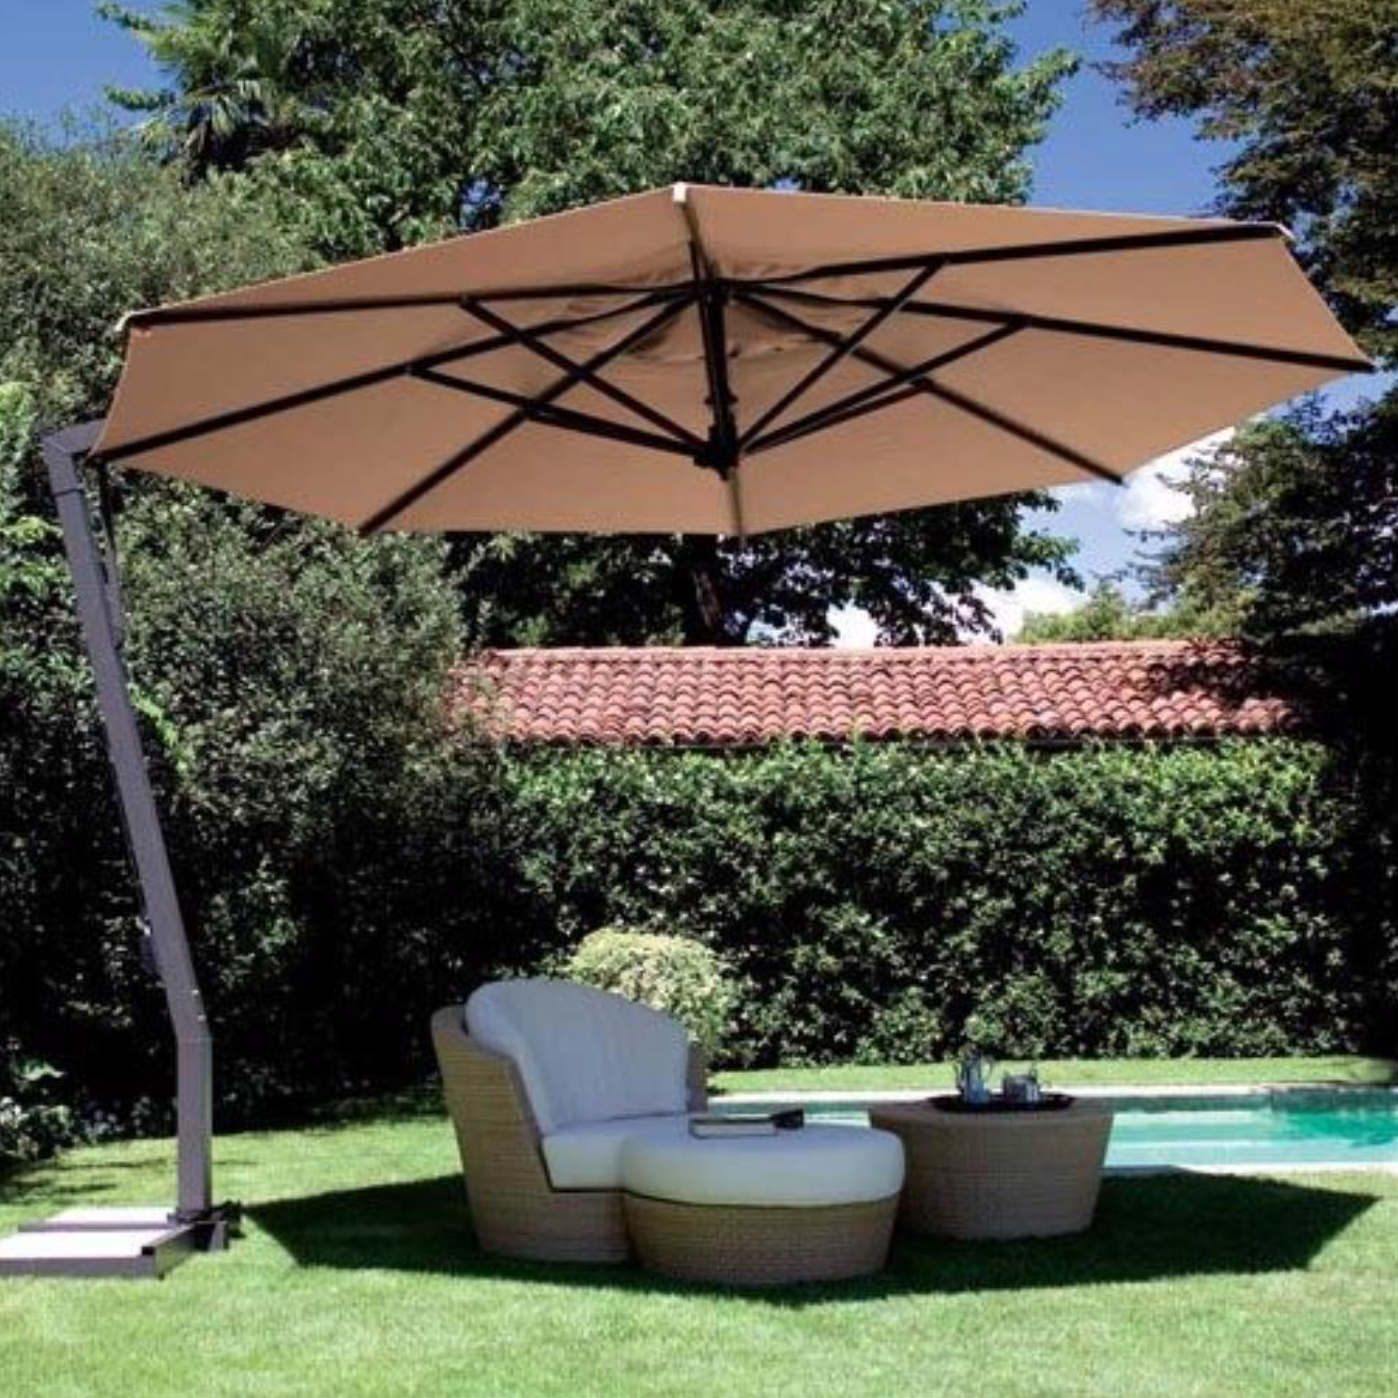 The Fim P20 Patio umbrella is shading a chair on the lawn.